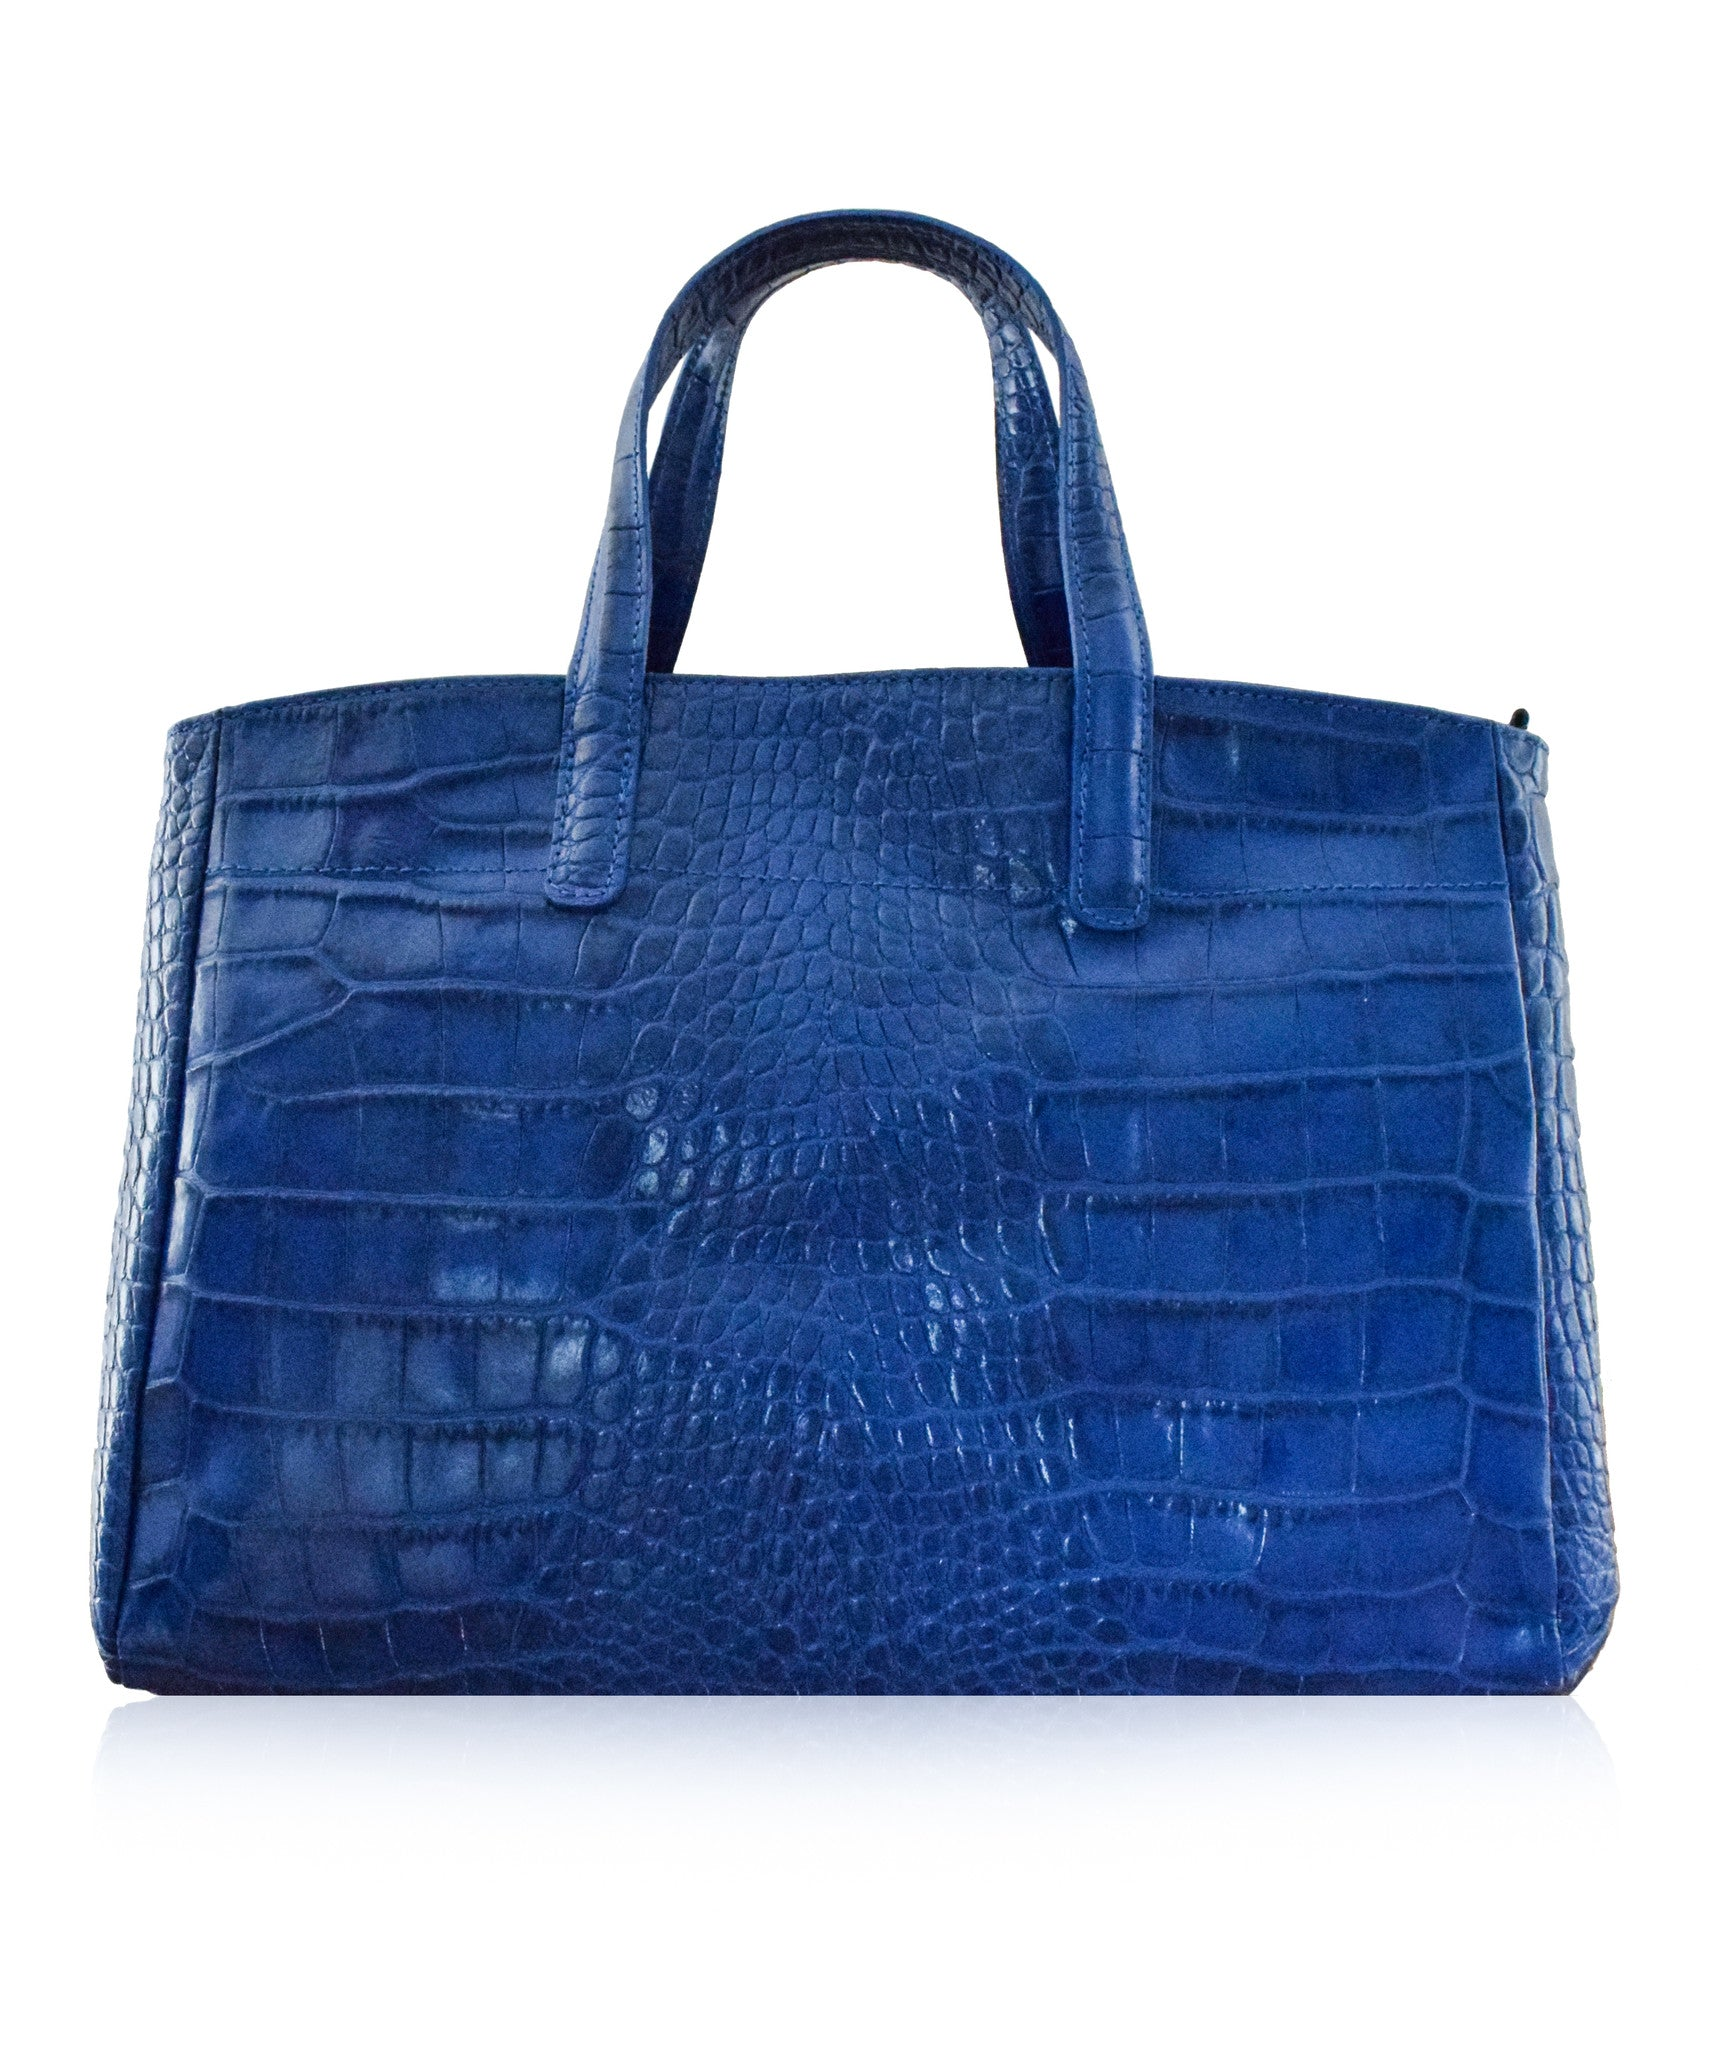 ba536a3933f5 GODENZO Blue Longchamp Roseau Style Italian Leather Tote Bag ...